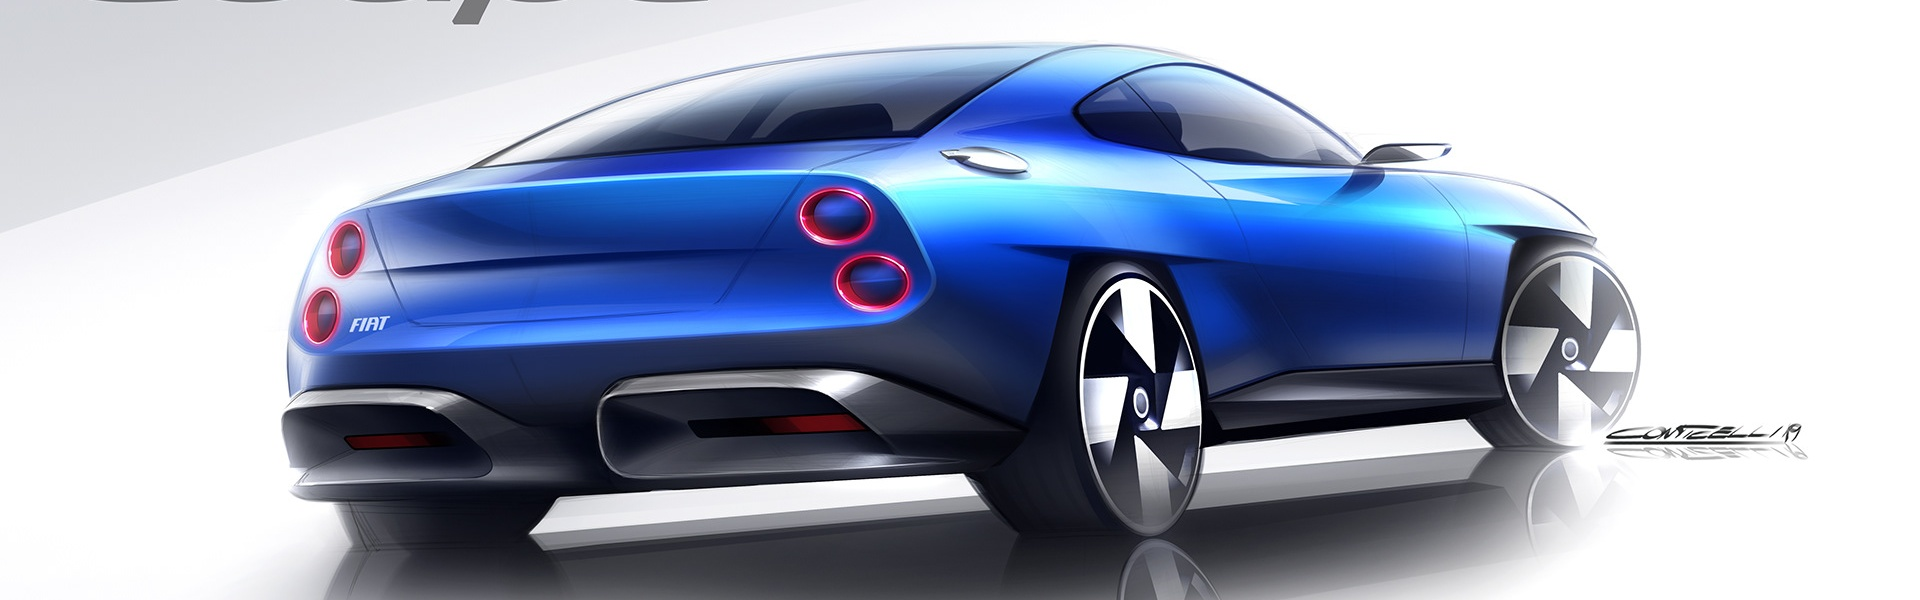 Fiat-Coupe-Tribute-renderings-by-Gaspare-Conticelli-4.jpg